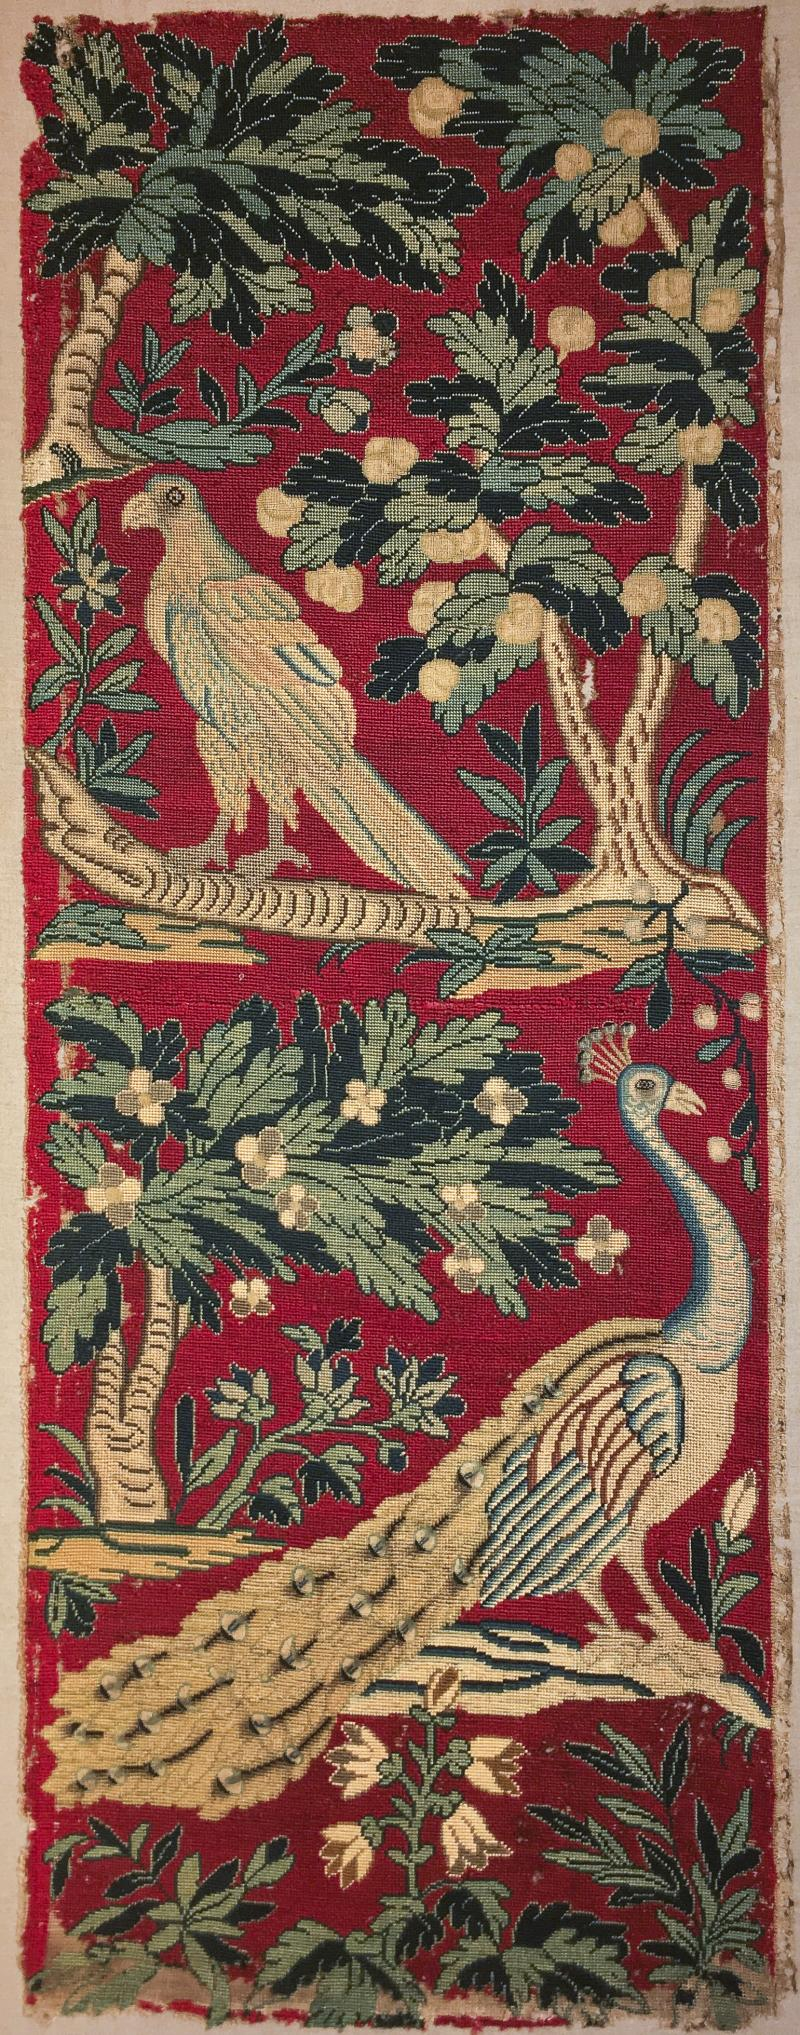 18th Century Needlework Picture with Peacock and Parrot